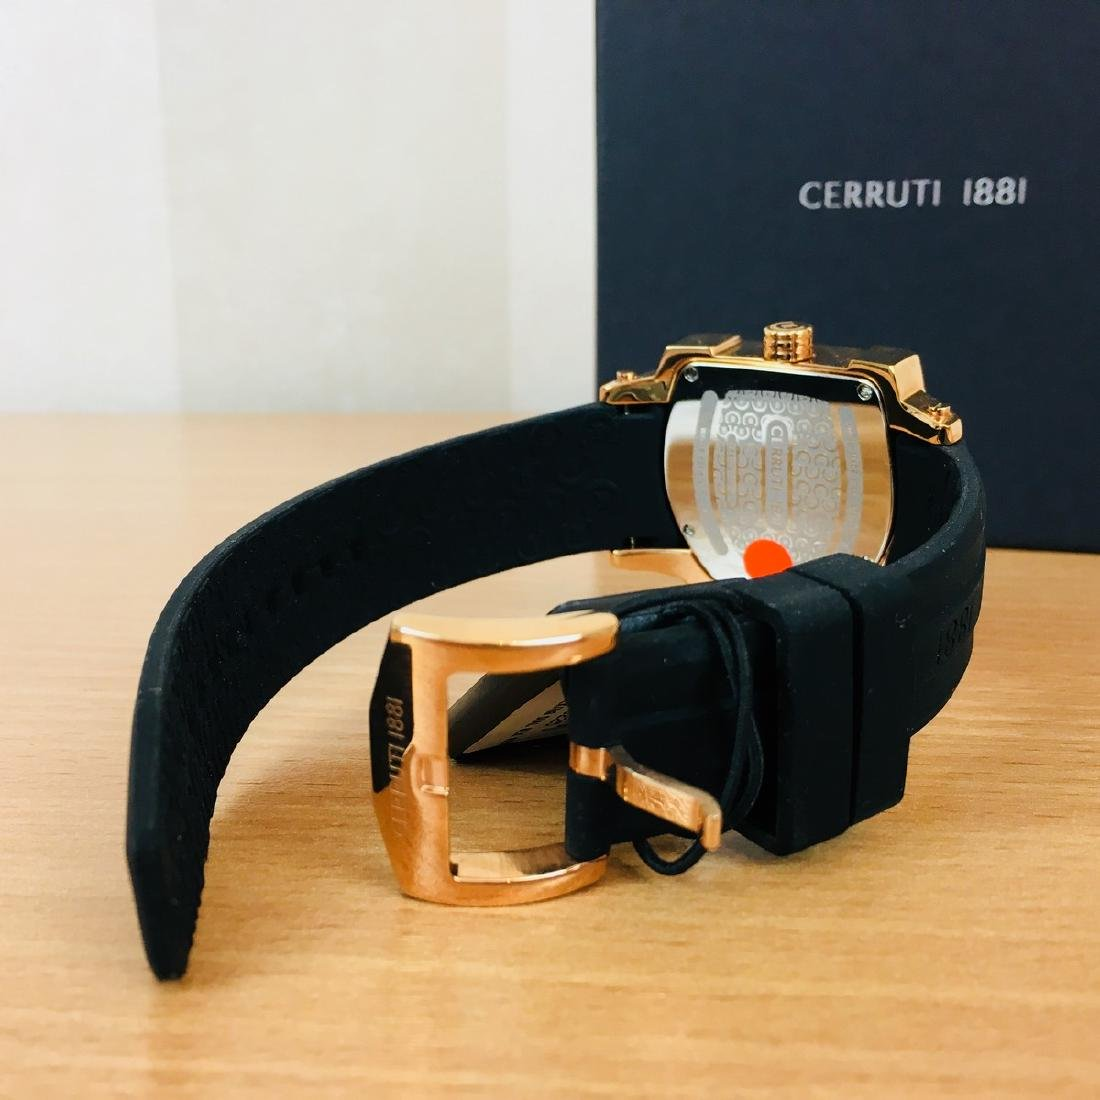 Cerruti 1881 – Men's Swiss Made Gold Plated Luxurious - 5